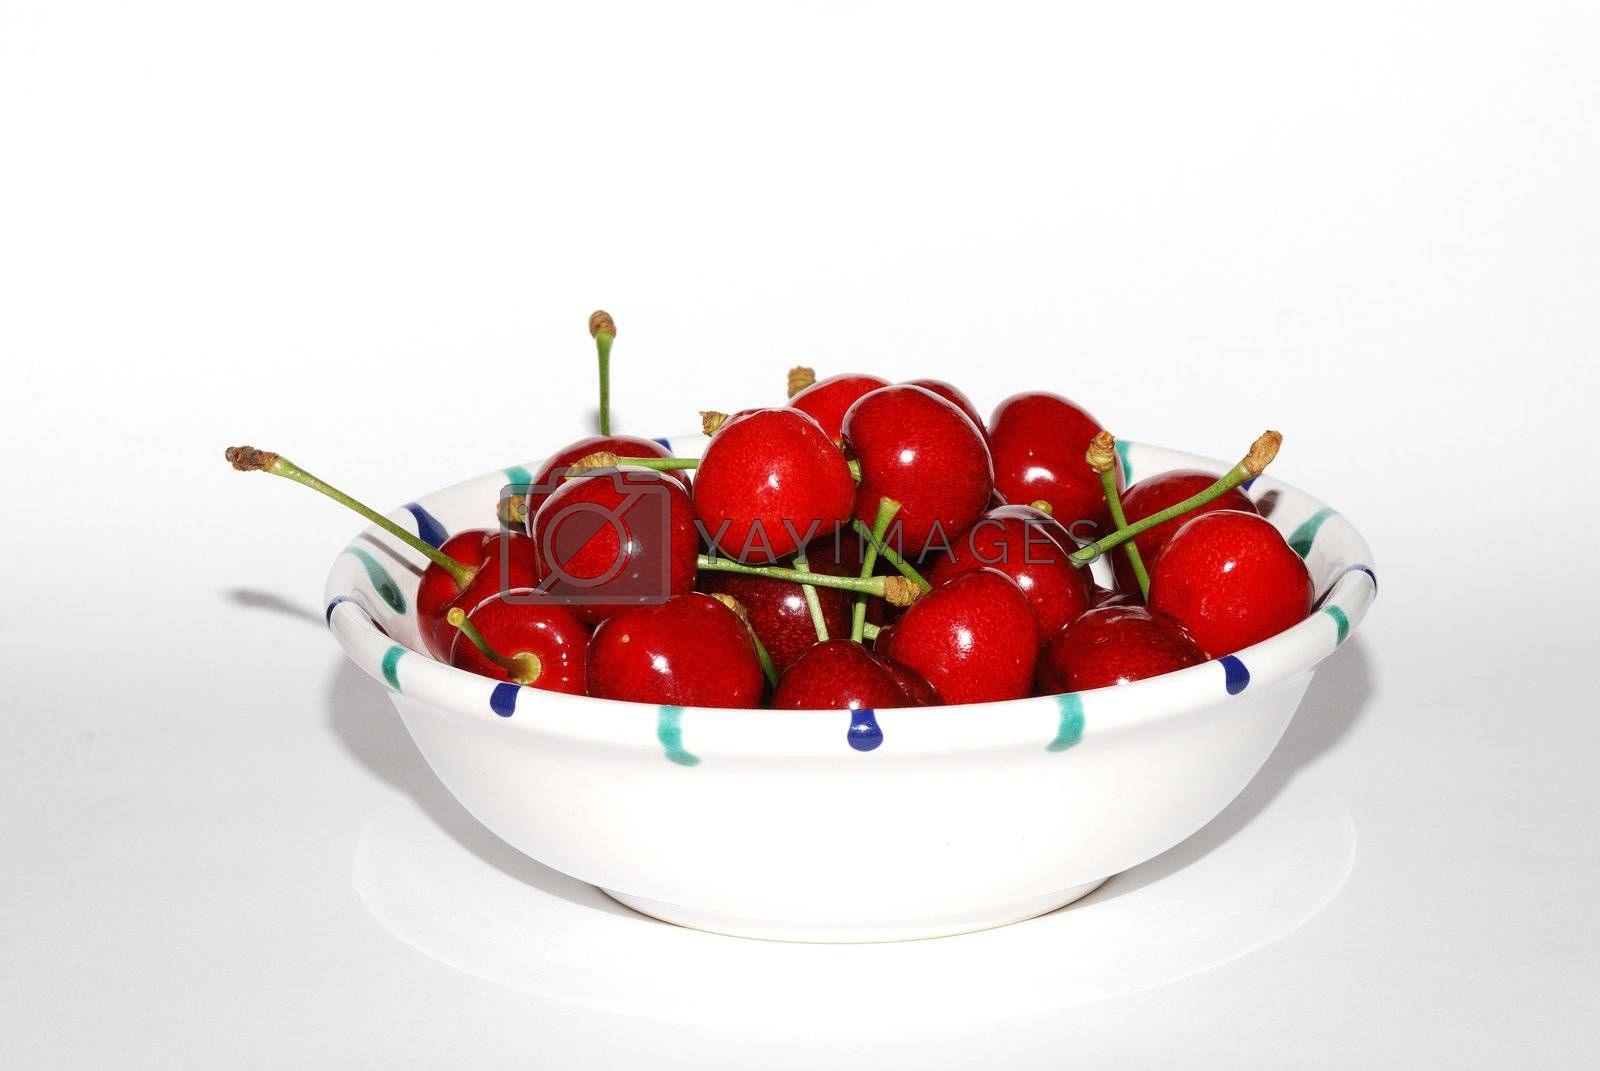 querformat many juicy red cherries in a bowl